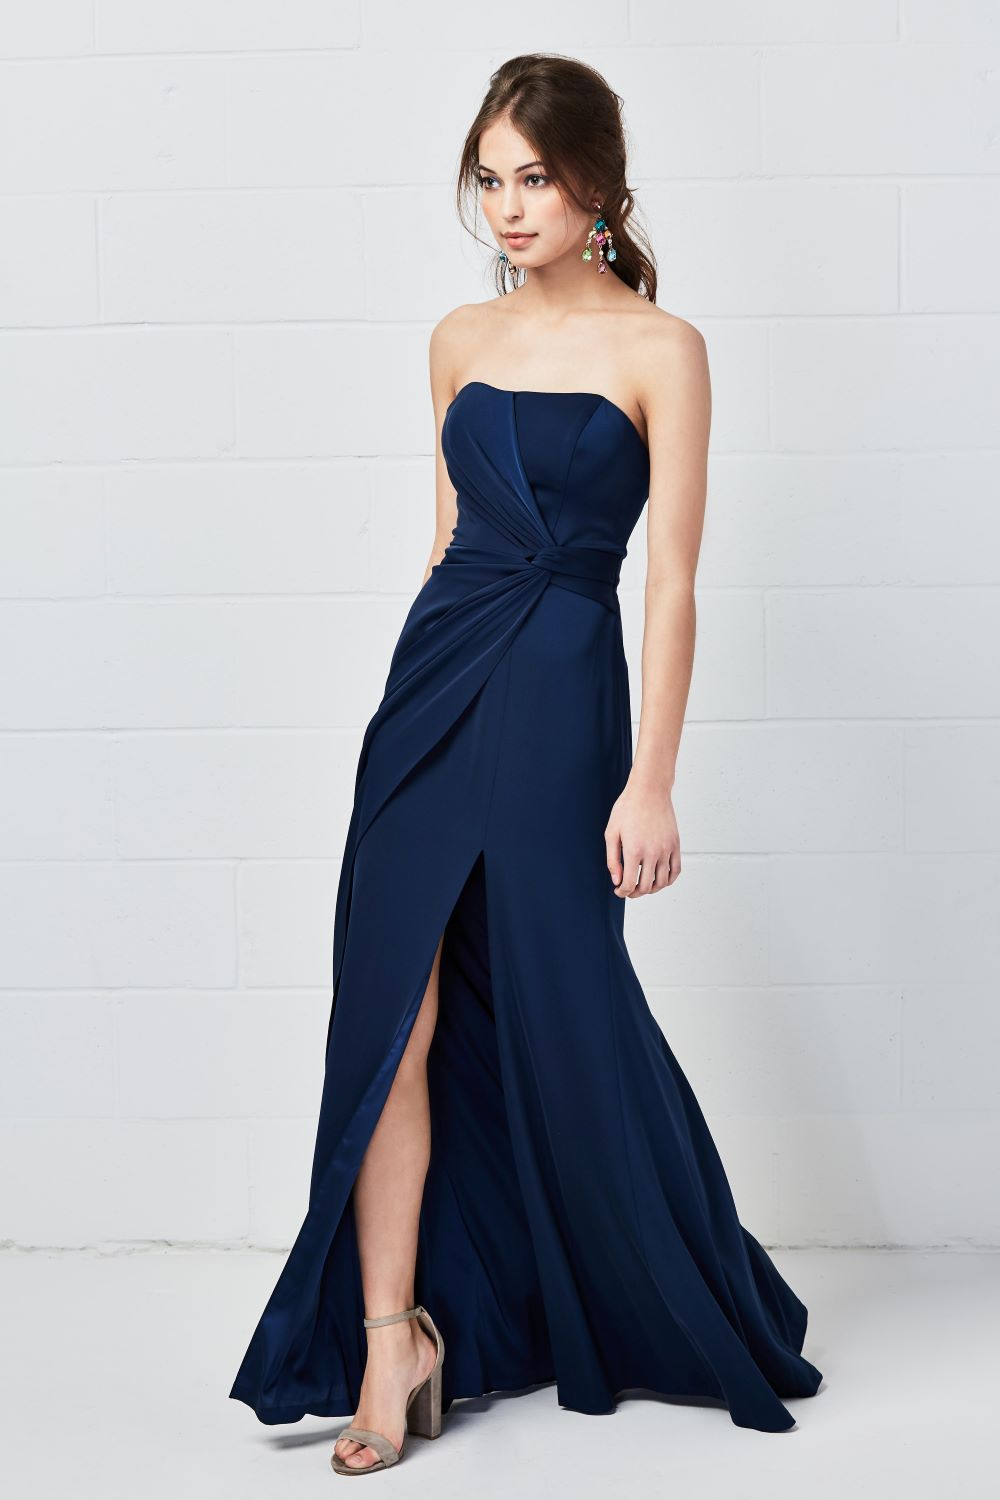 navy-blue-strapless-bridesmaid-dress